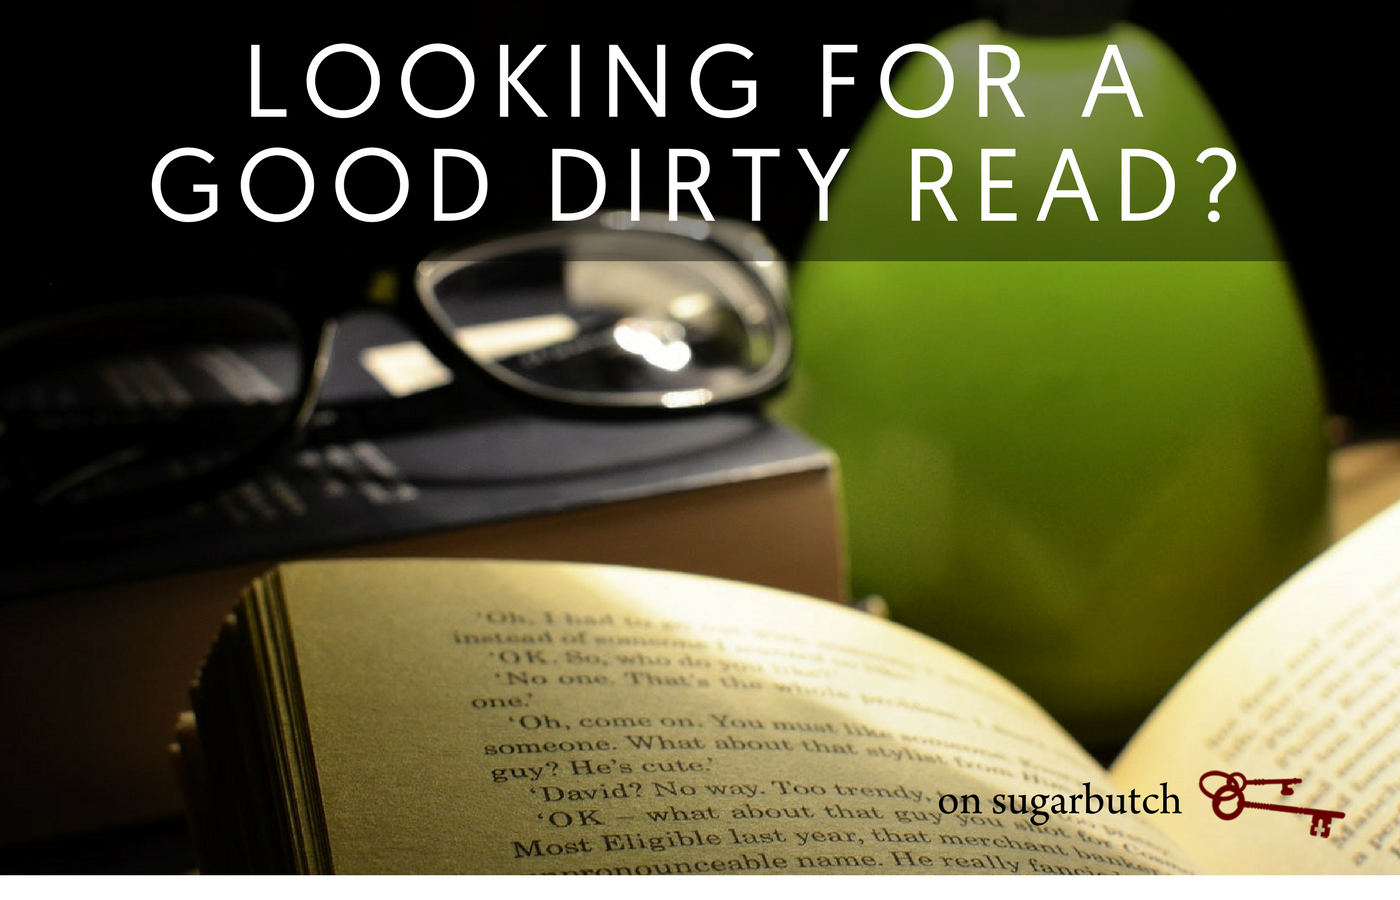 Looking for a good dirty read? Here ya go